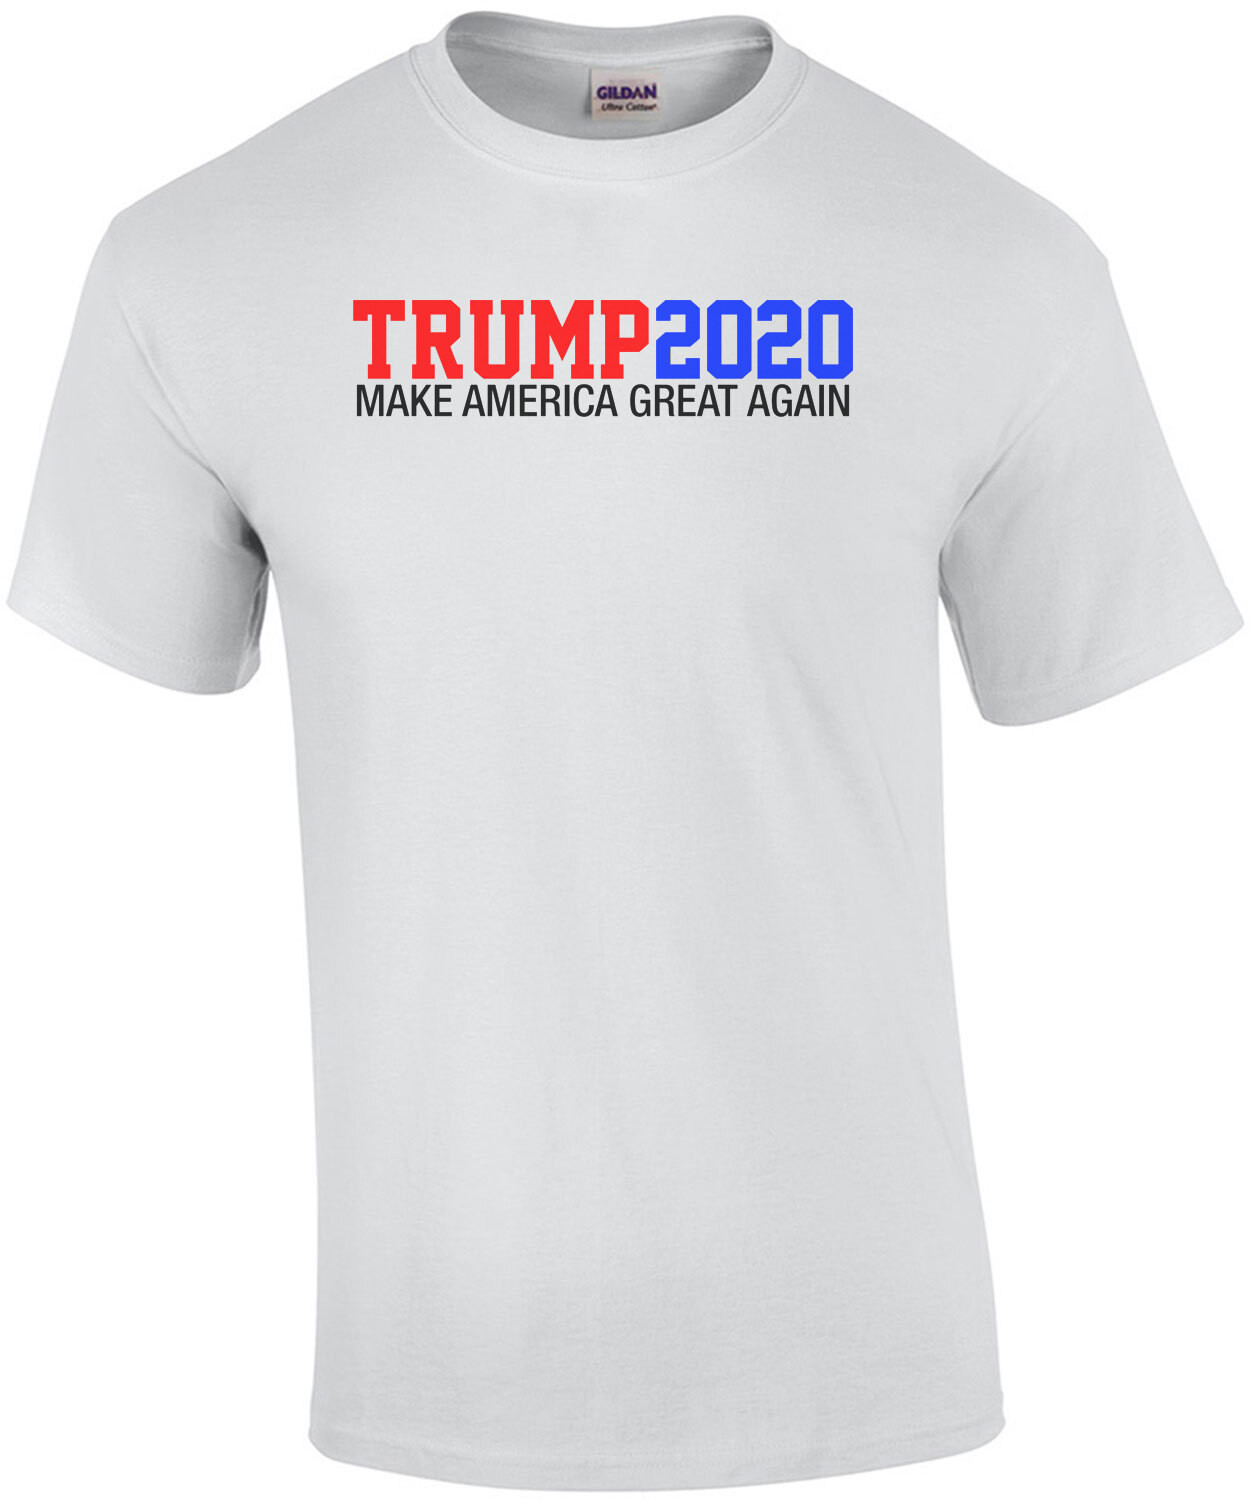 Trump 2020 - Make America Great Again T-Shirt